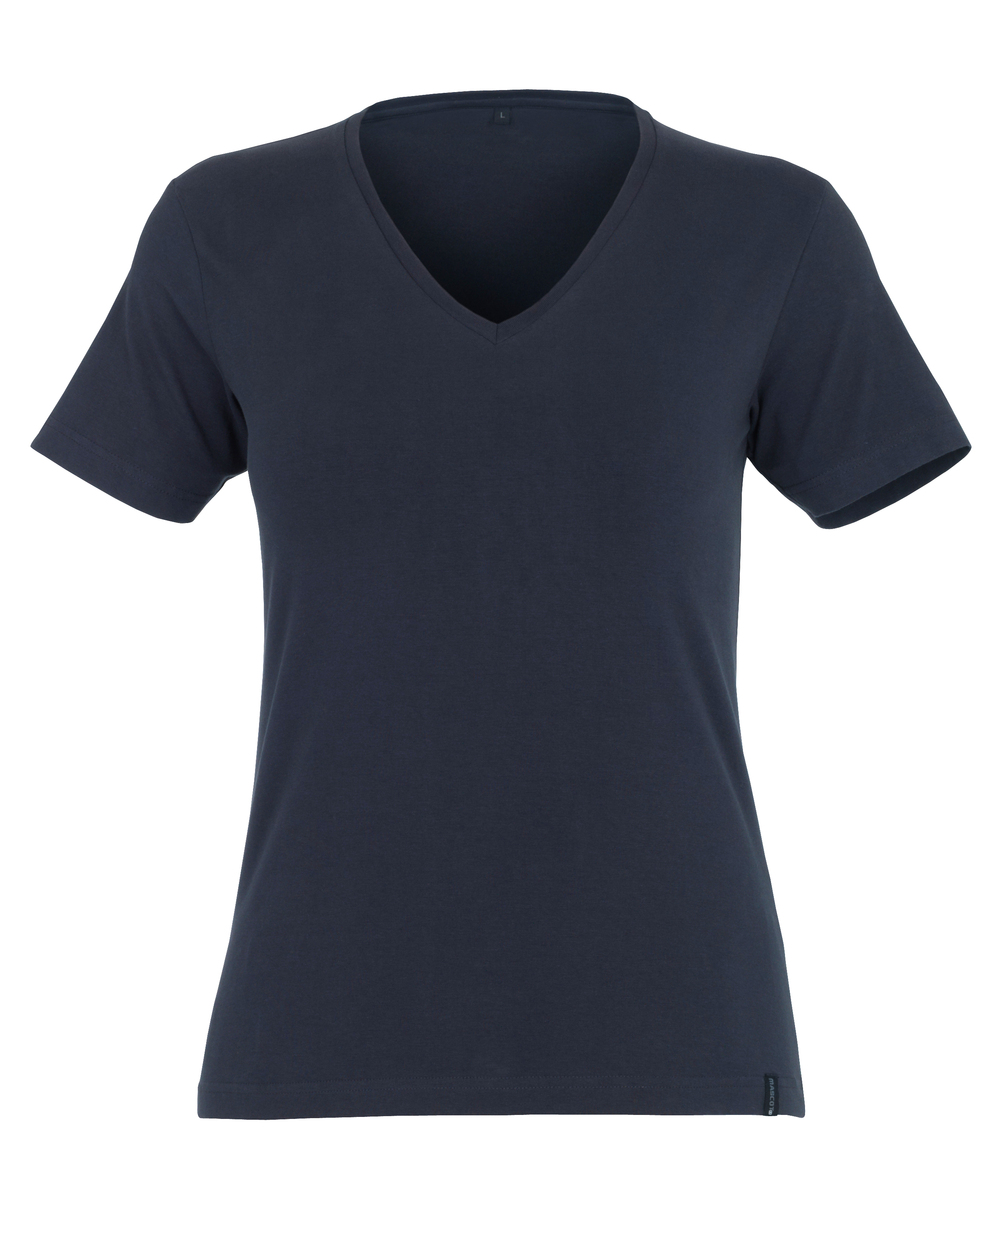 50369-862-010 T-shirt - dark navy